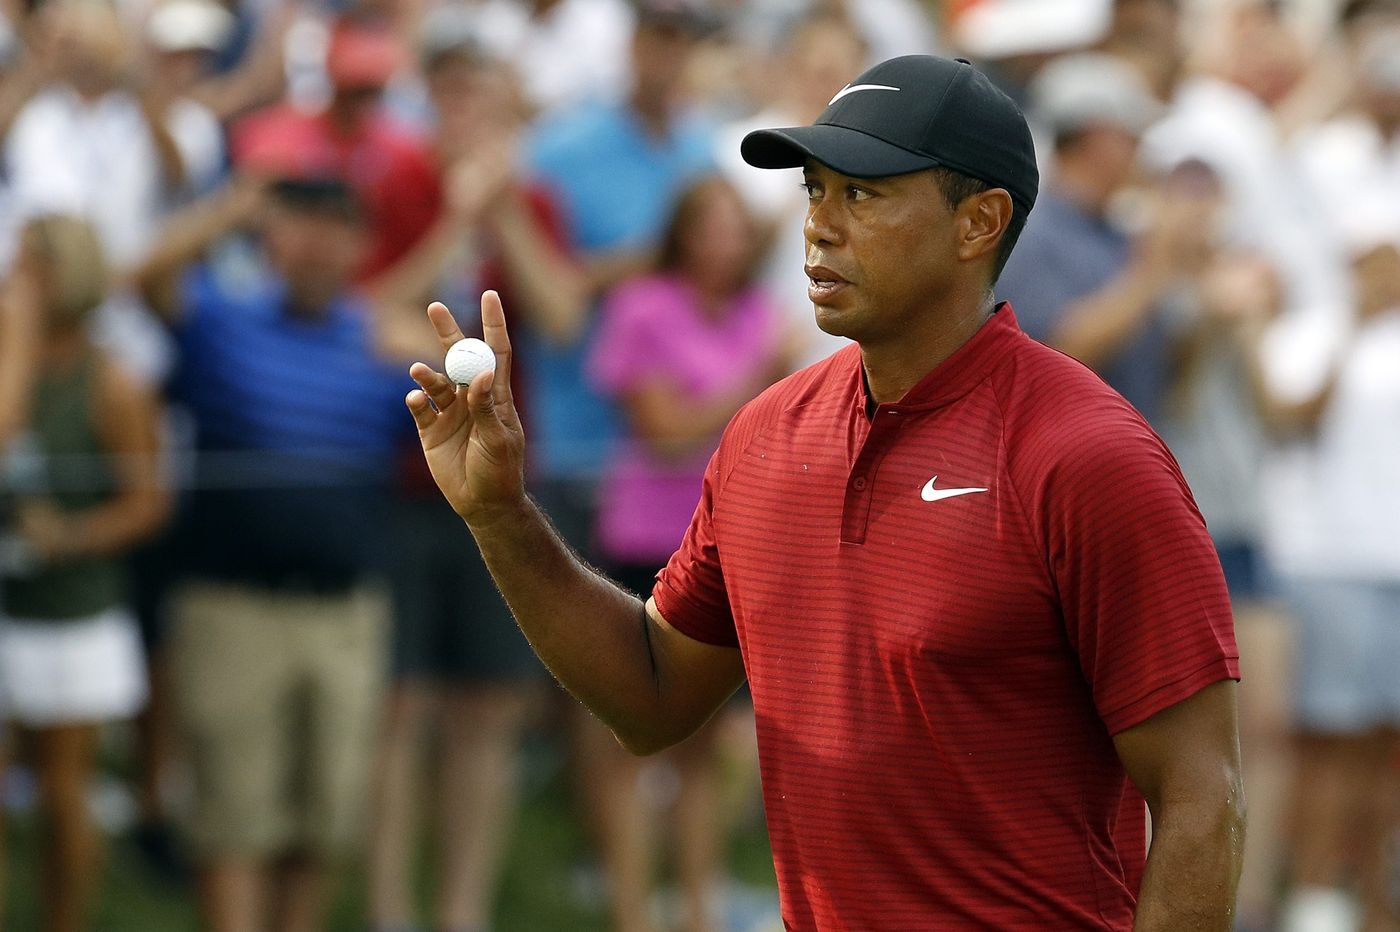 Tiger Woods scheduled to compete next month in BMW Championship at Aronimink